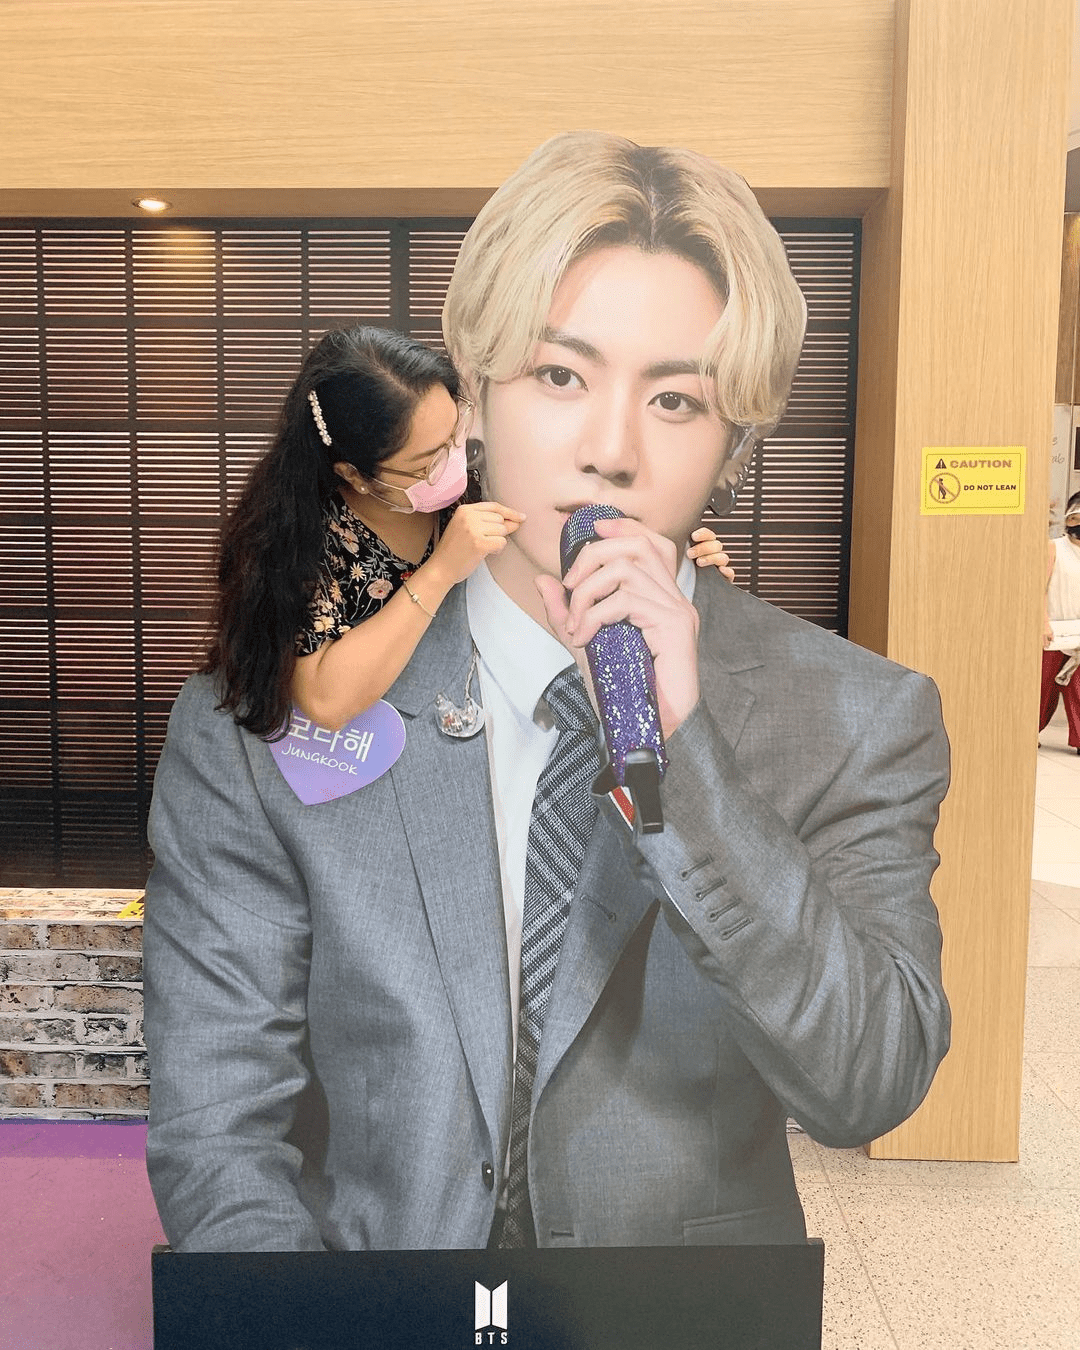 Girl with Jungkook cutout